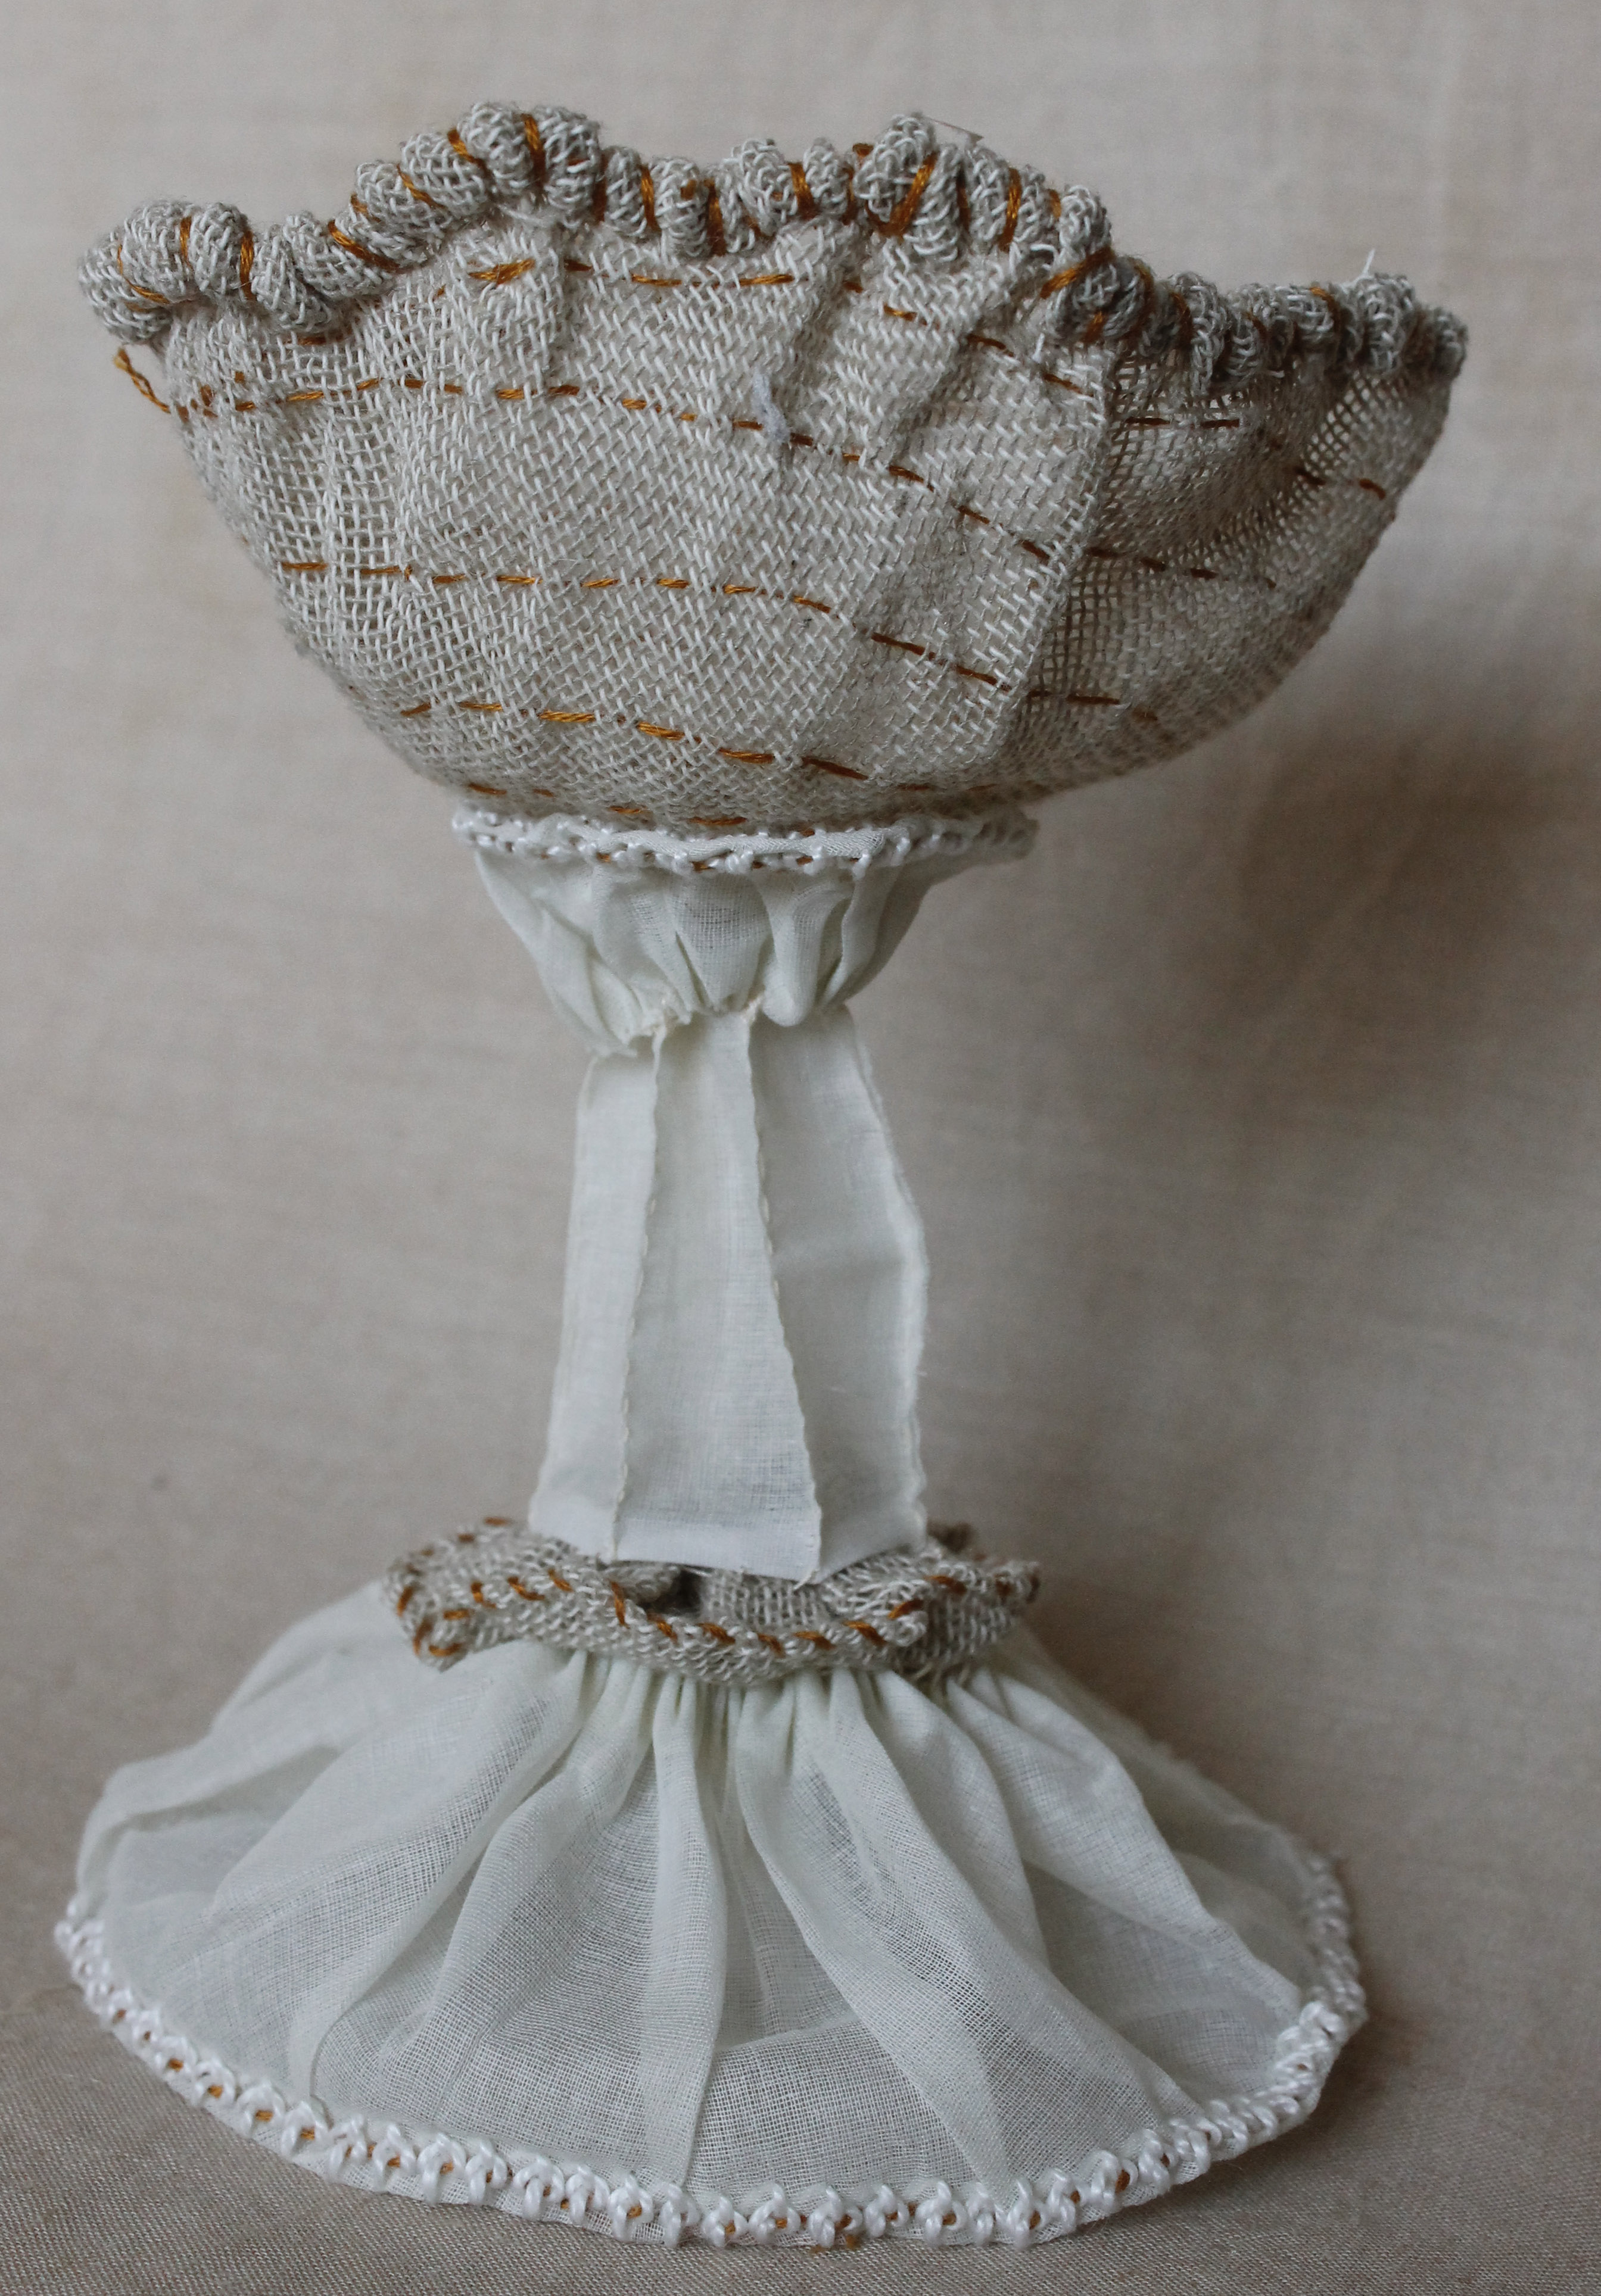 Textile piece inspired by a Silver Chalice